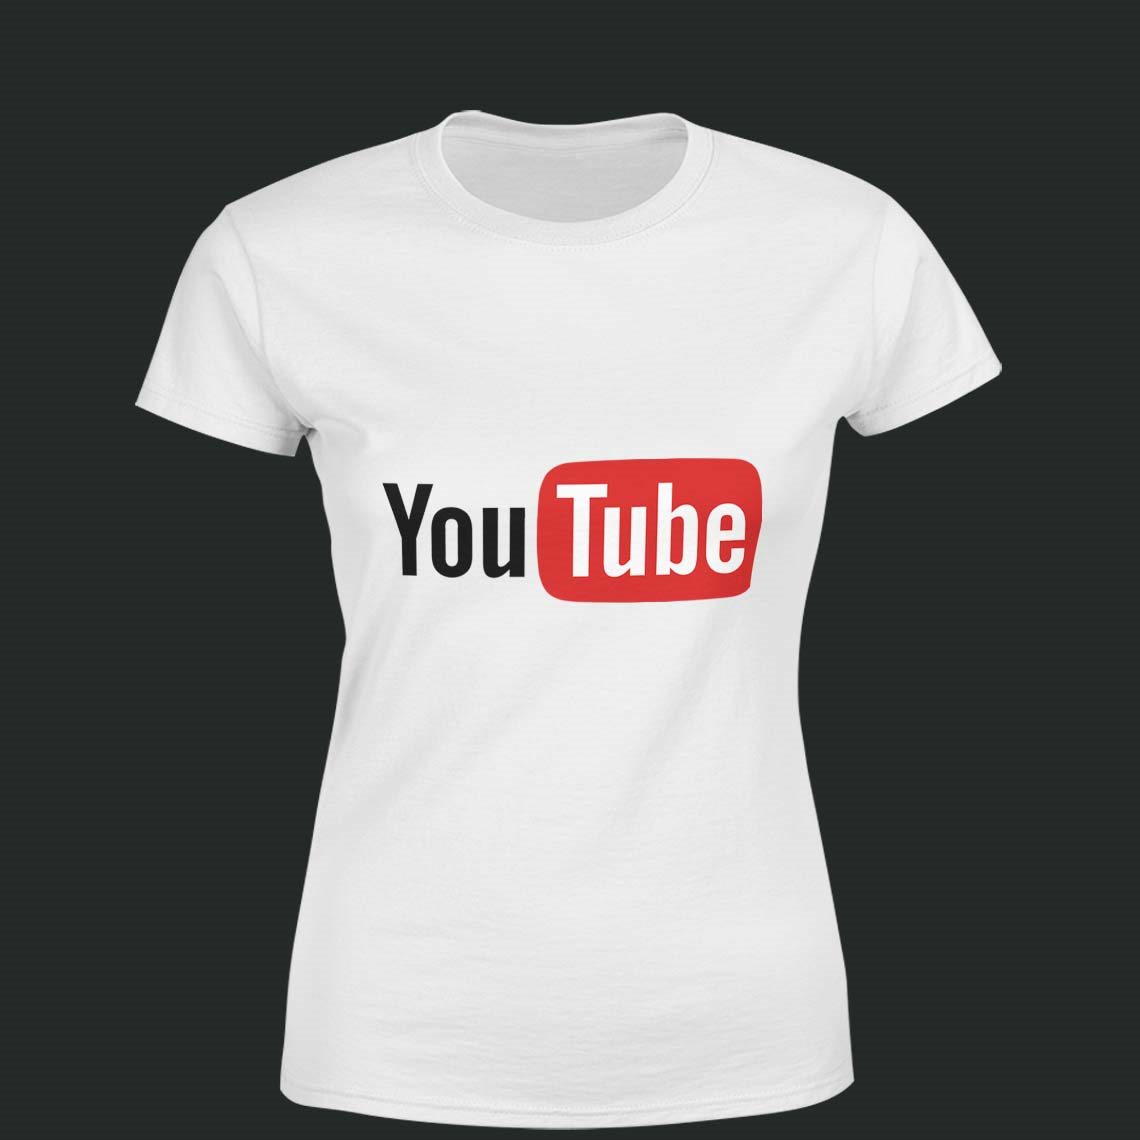 YOUTUBE - WOMEN TSHIRTS © - Passion Swap